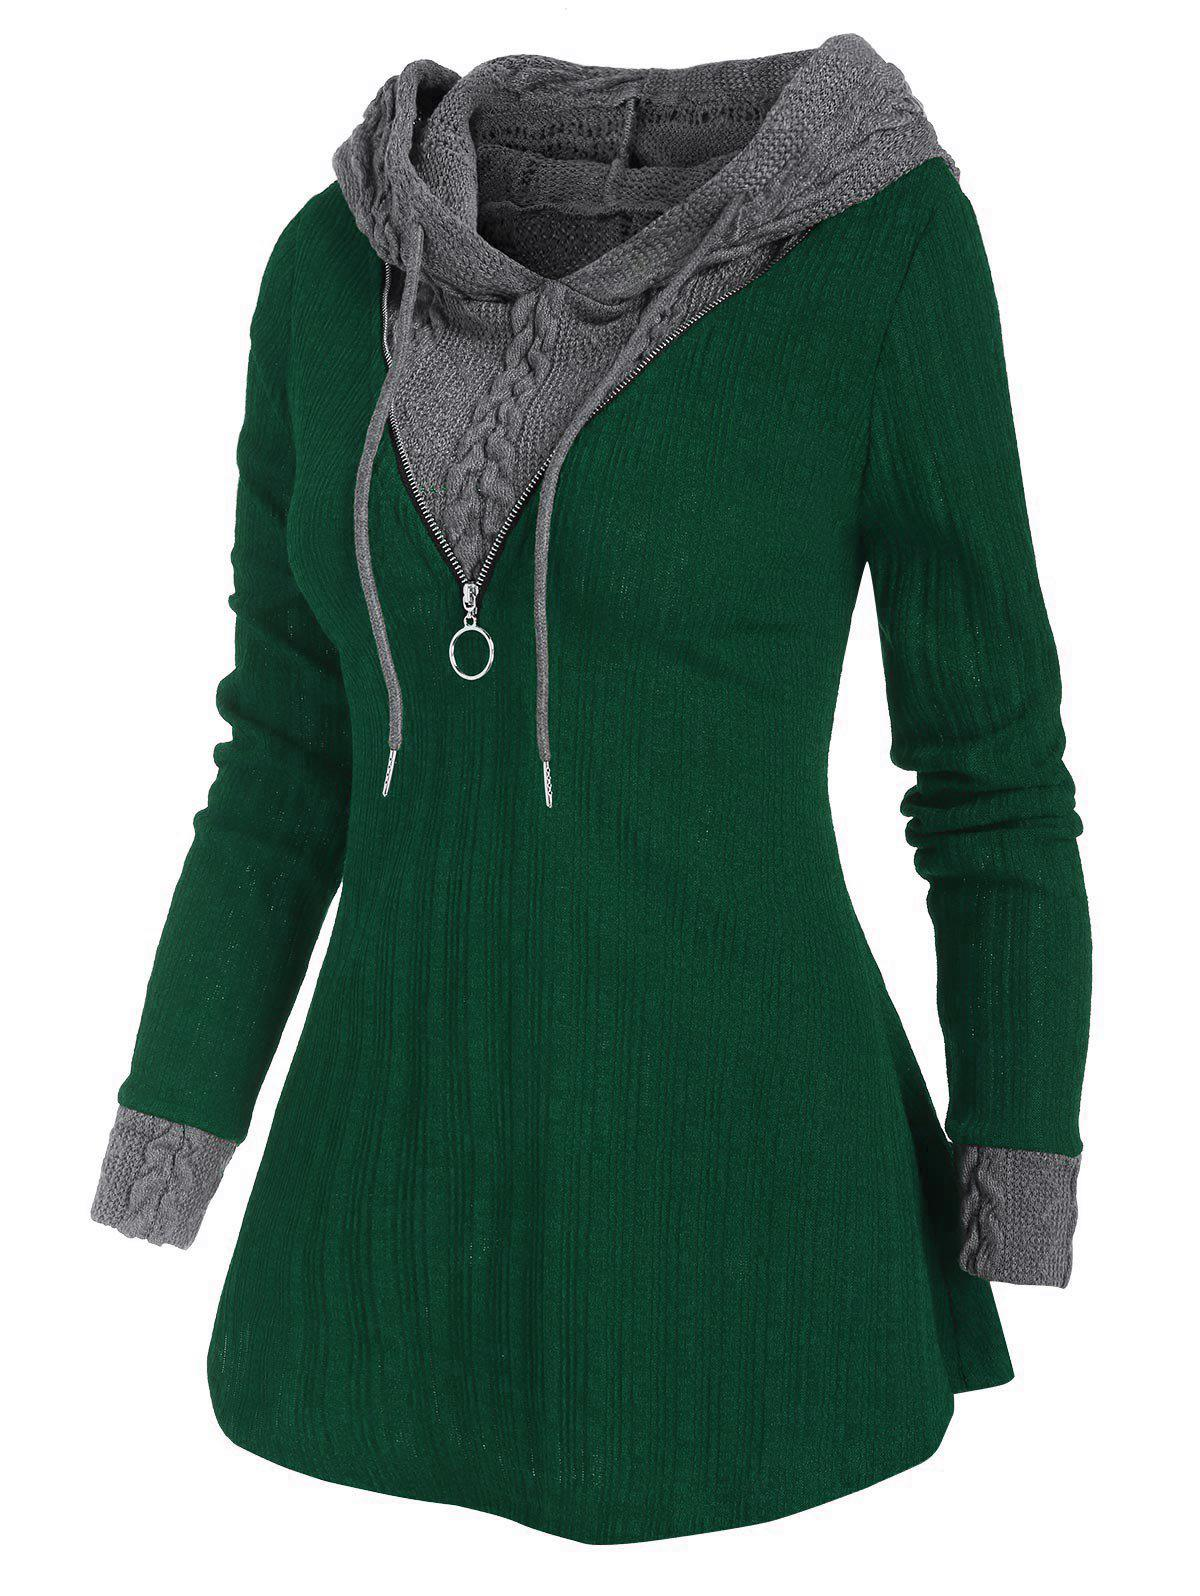 Two Tone Hooded Zip Embellished Sweater - DEEP GREEN S